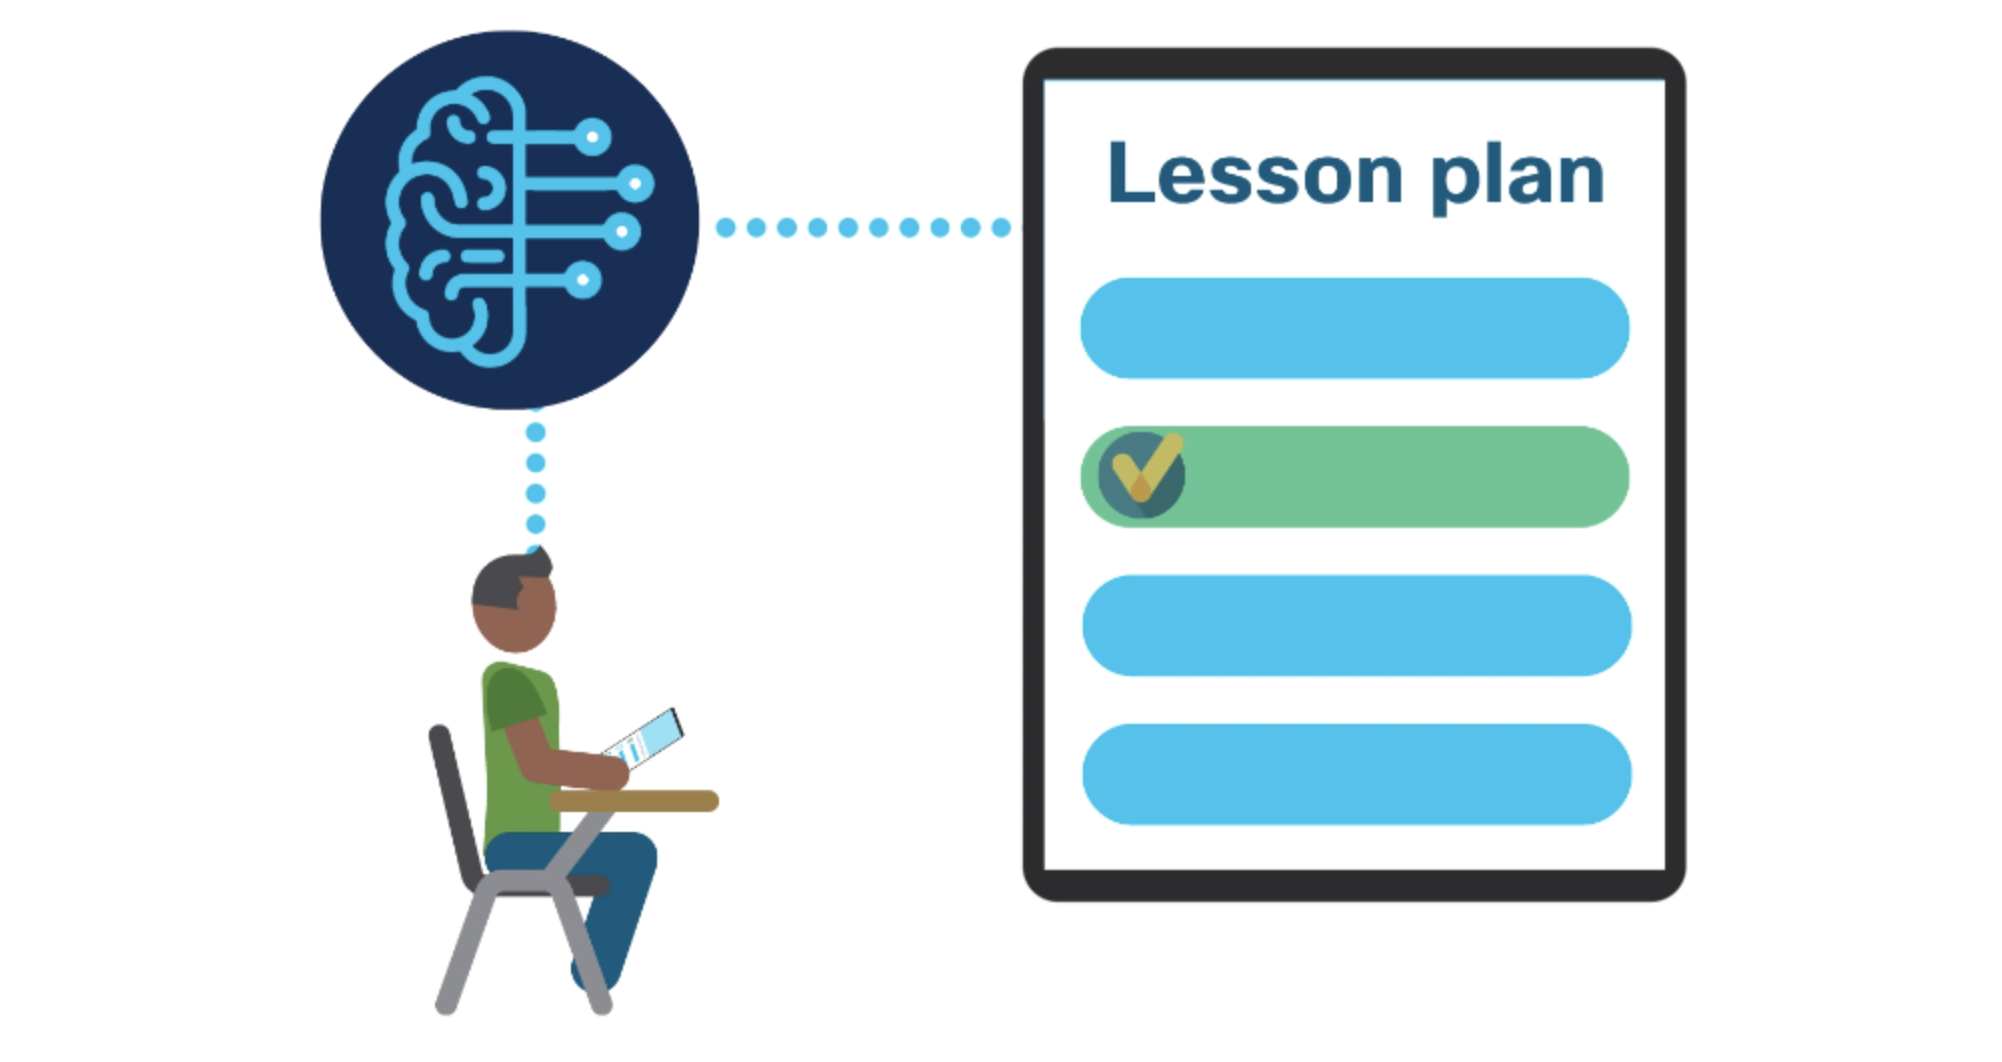 Using AI to personalize lessons